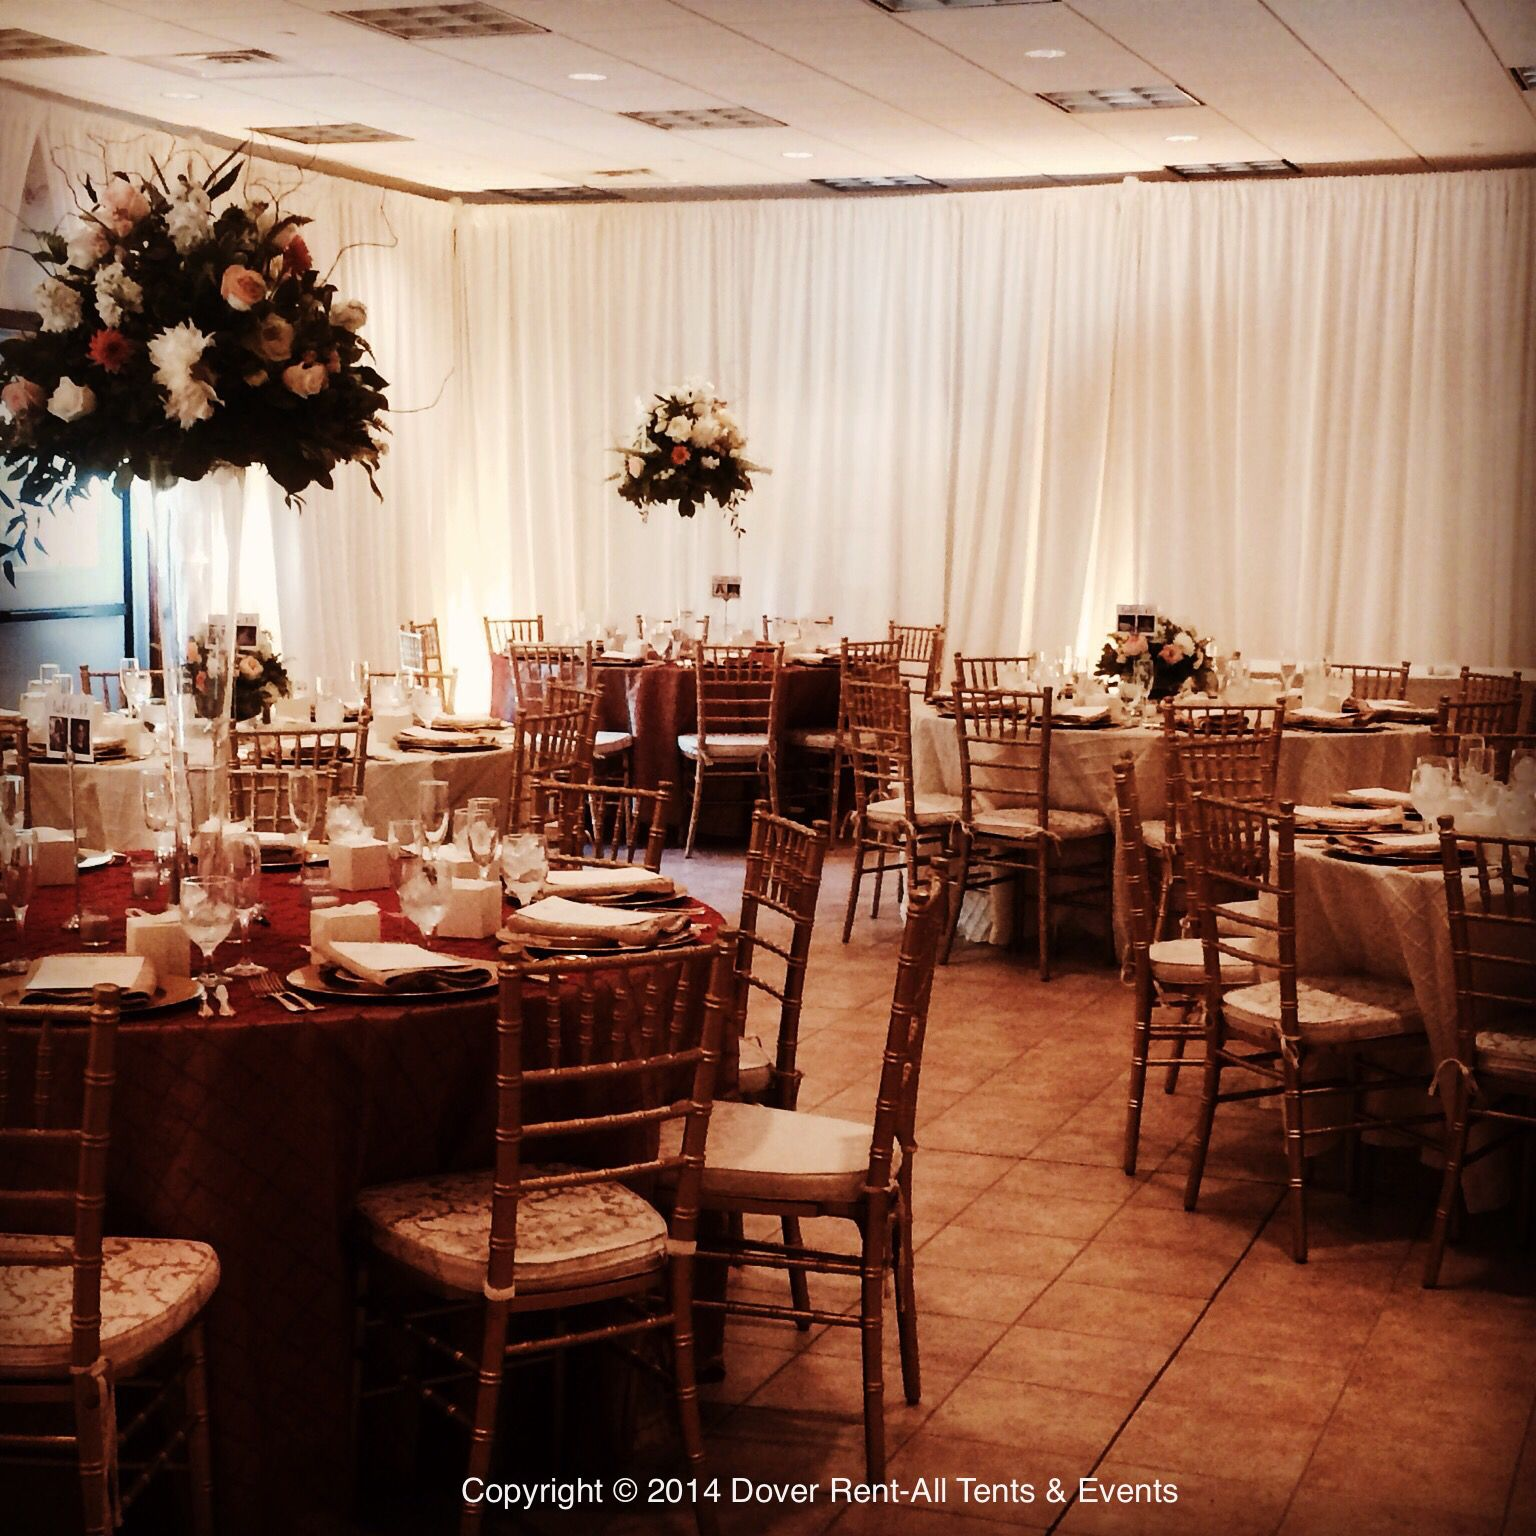 Table And Chair Rentals In Delaware Pink Inflatable Bubble Romantic Champagne Blush Wedding Lewes At Nassau Valley Vineyards Draping Fabric Decor Www